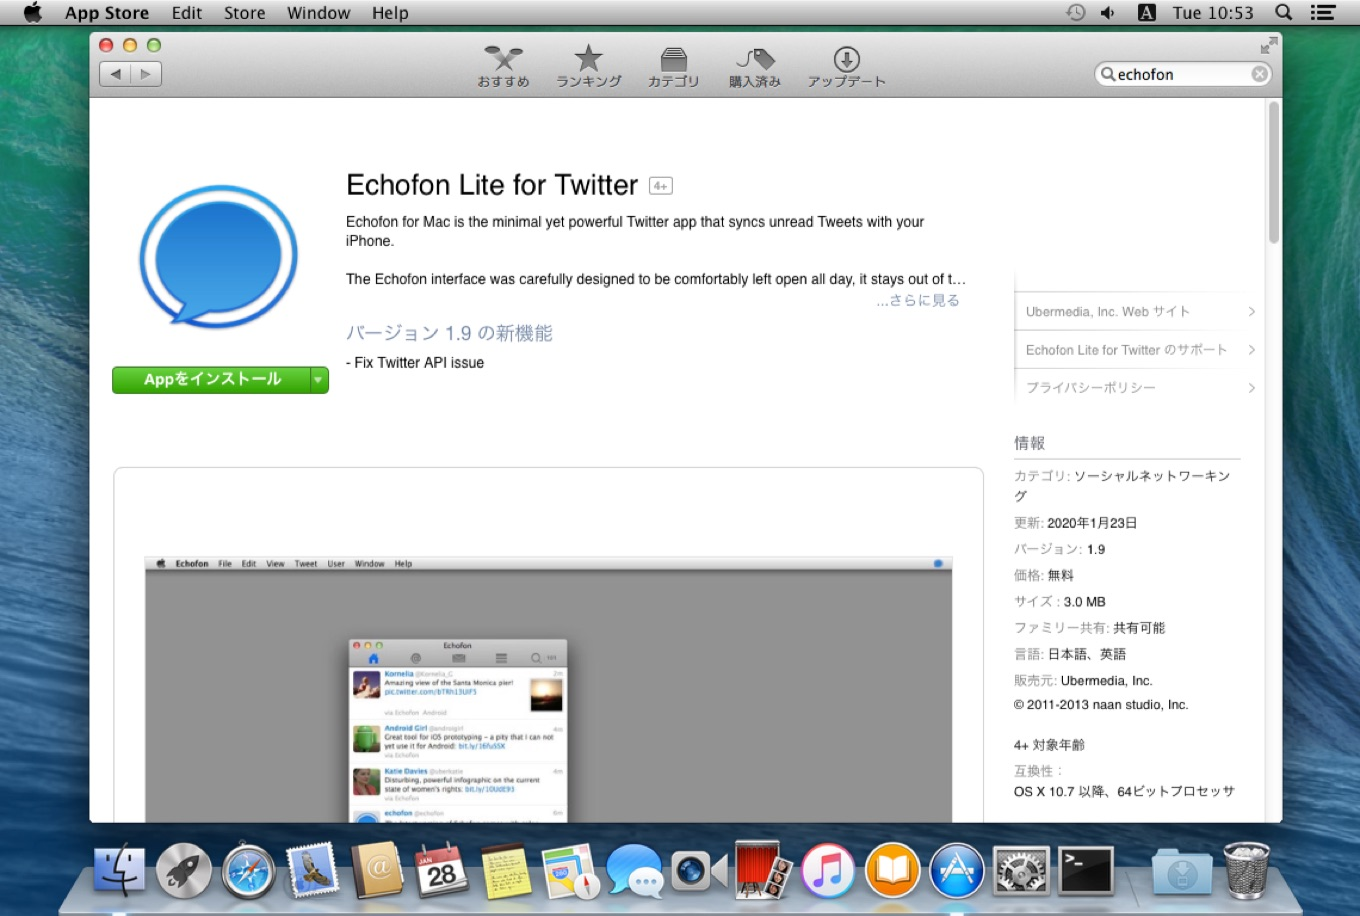 Echofon Lite for Twitter